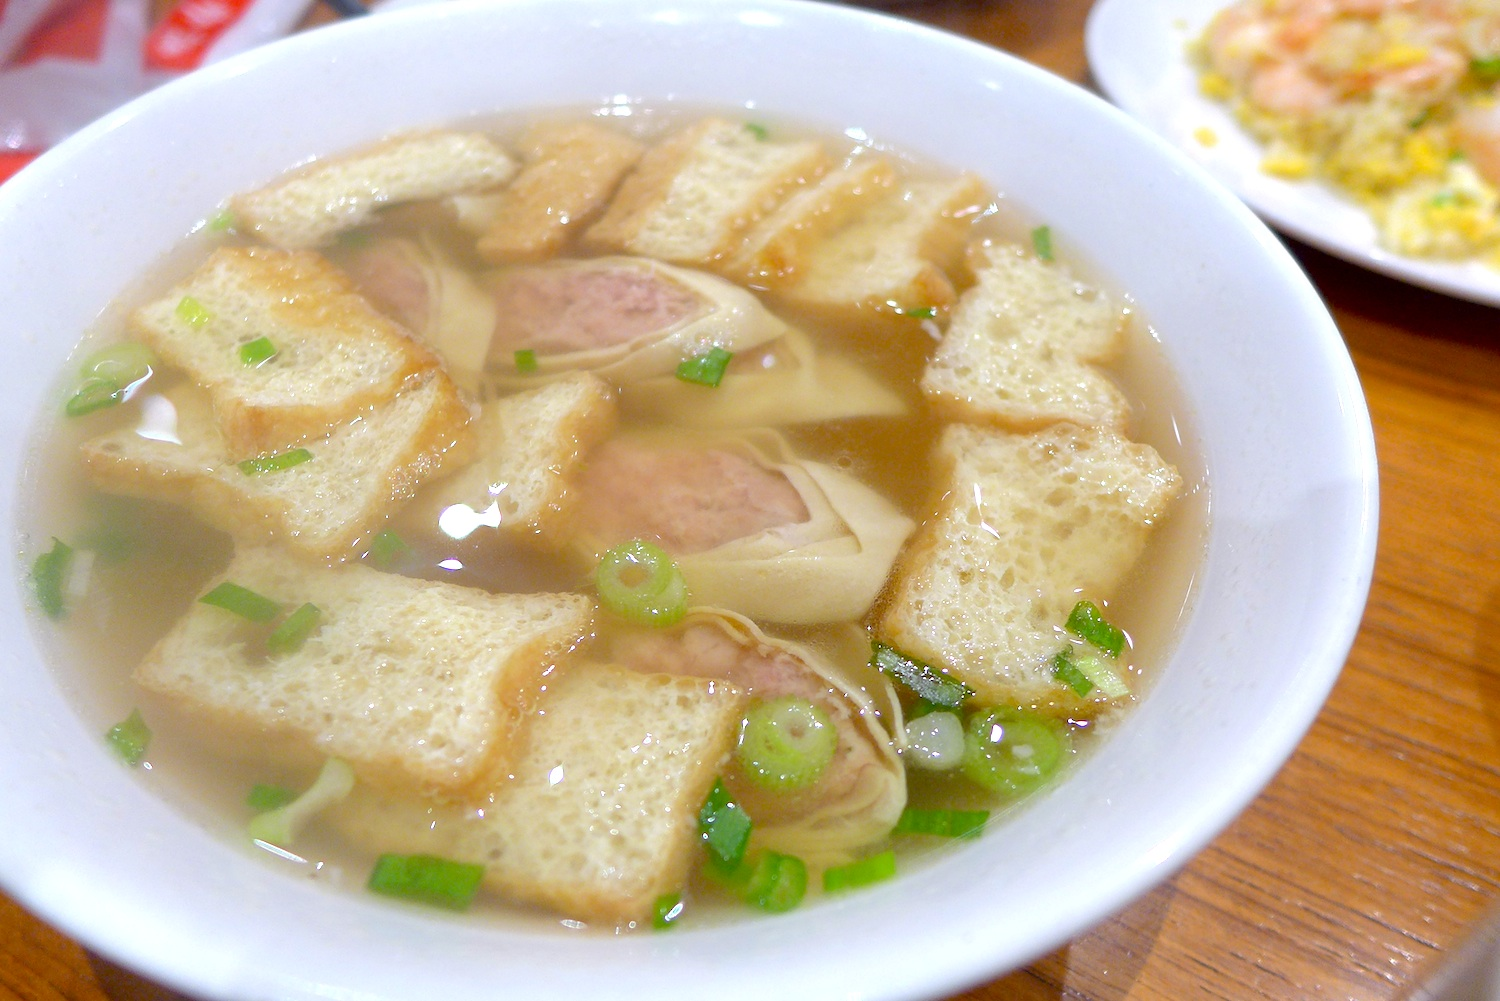 Vermicelli Soup with Deep-fried Beancurd & Minced Meat Rolls (S$ 9.80)